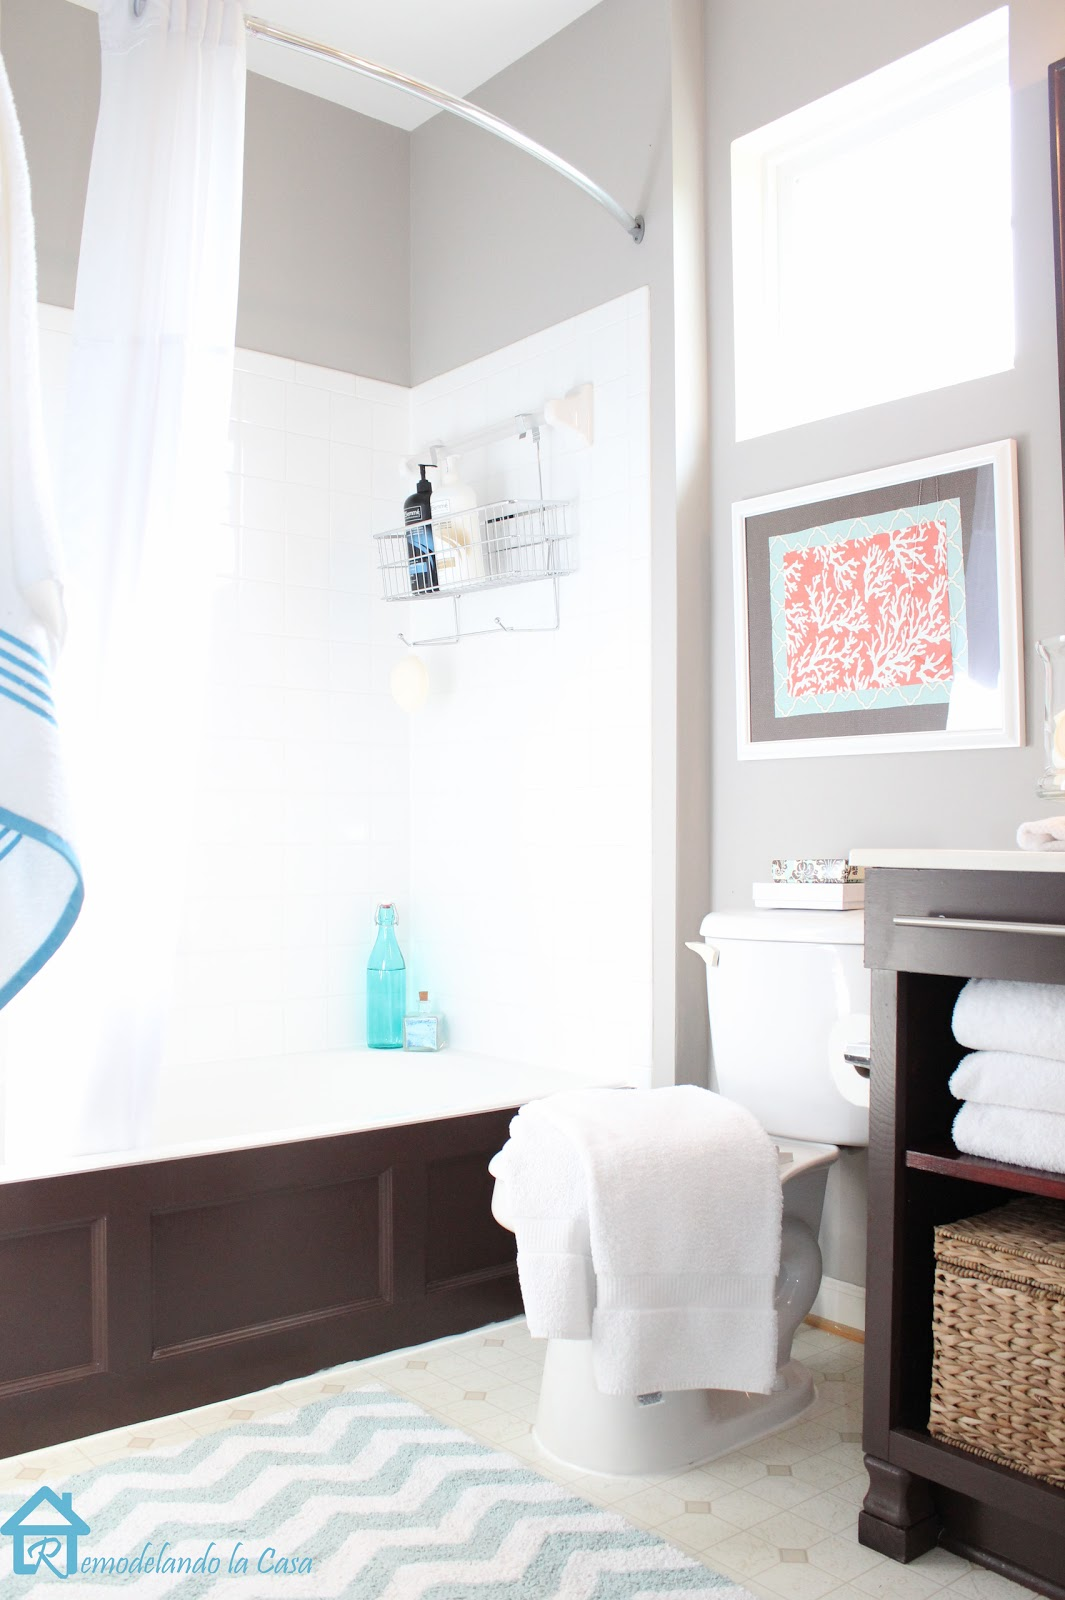 Remodelando la casa bathroom makeover for Small bathroom makeovers